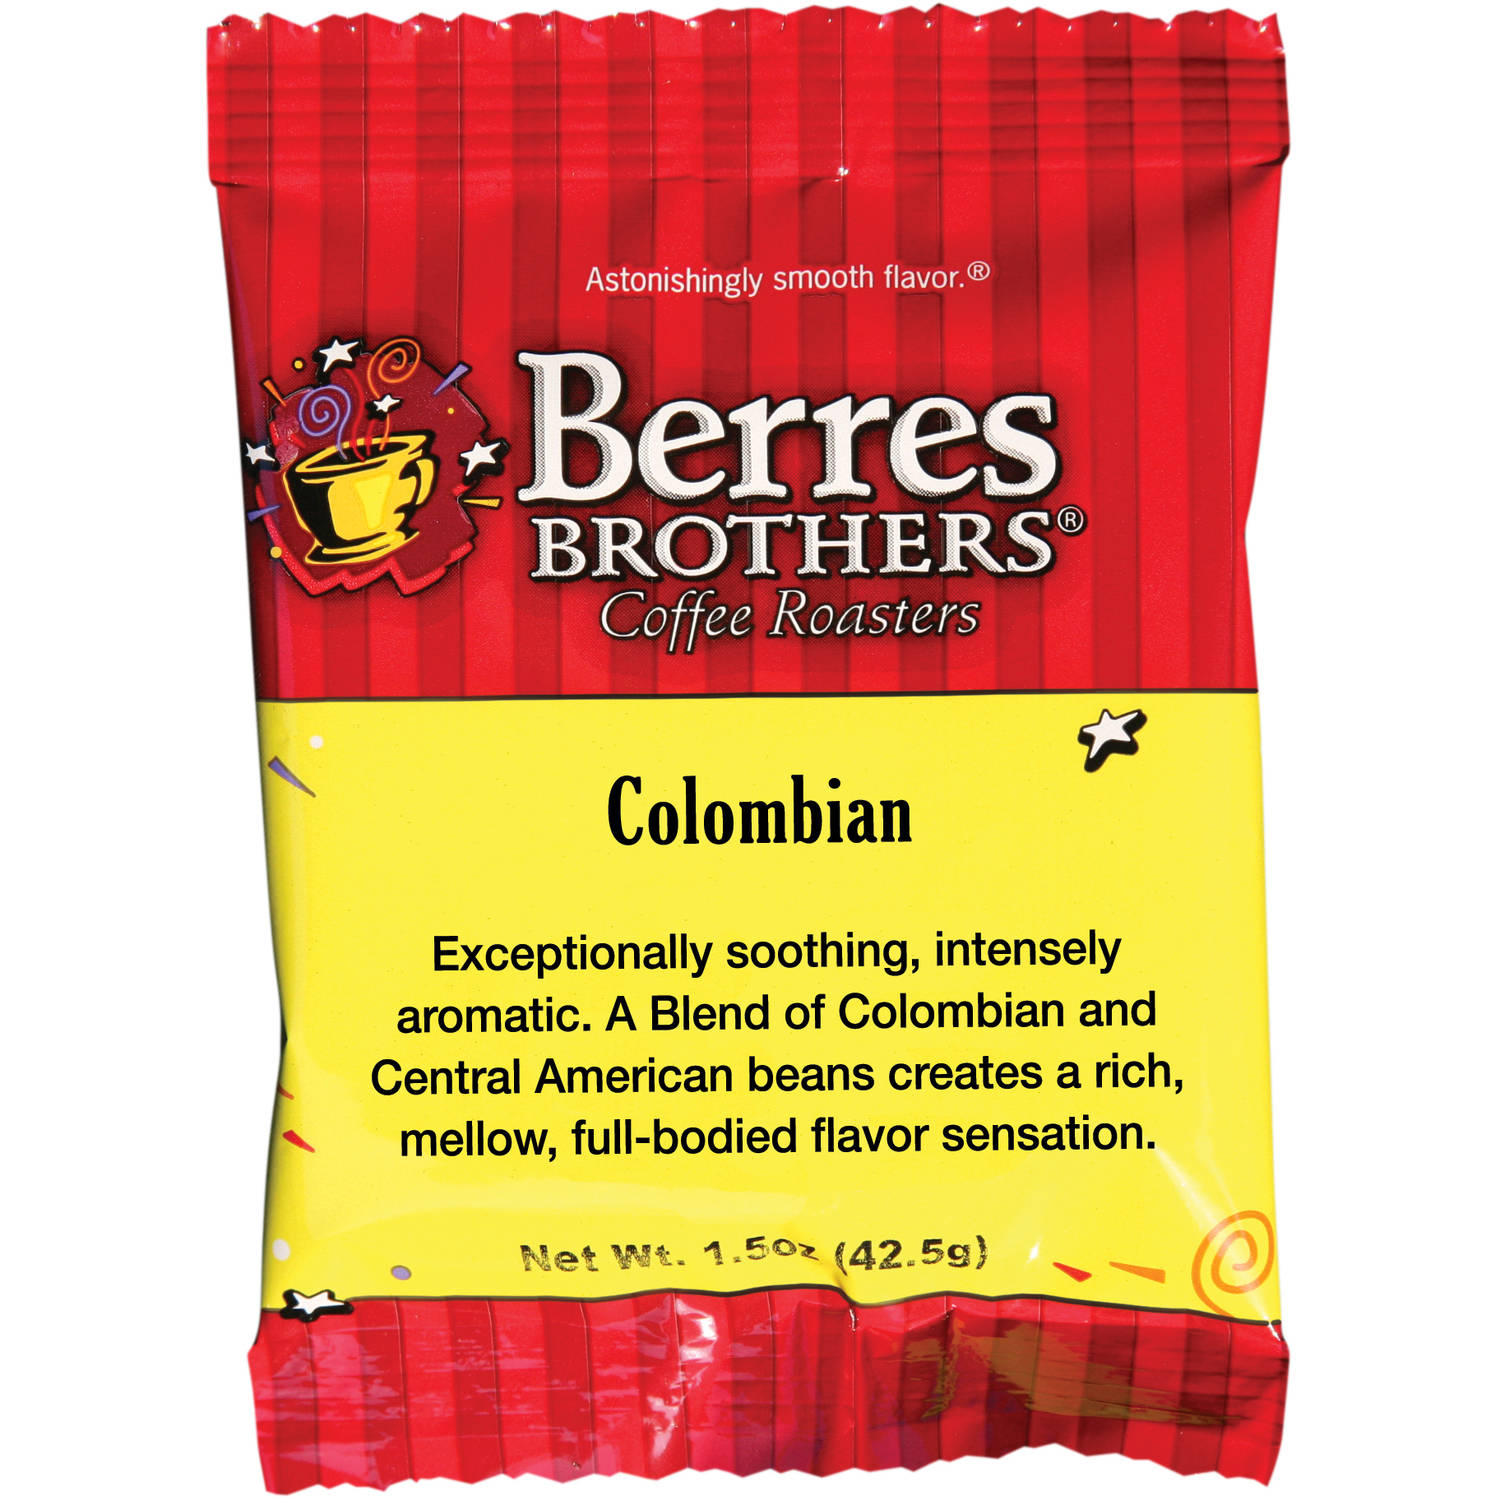 Berres Brothers Coffee Roasters Colombian Ground Coffee, 1.5 oz